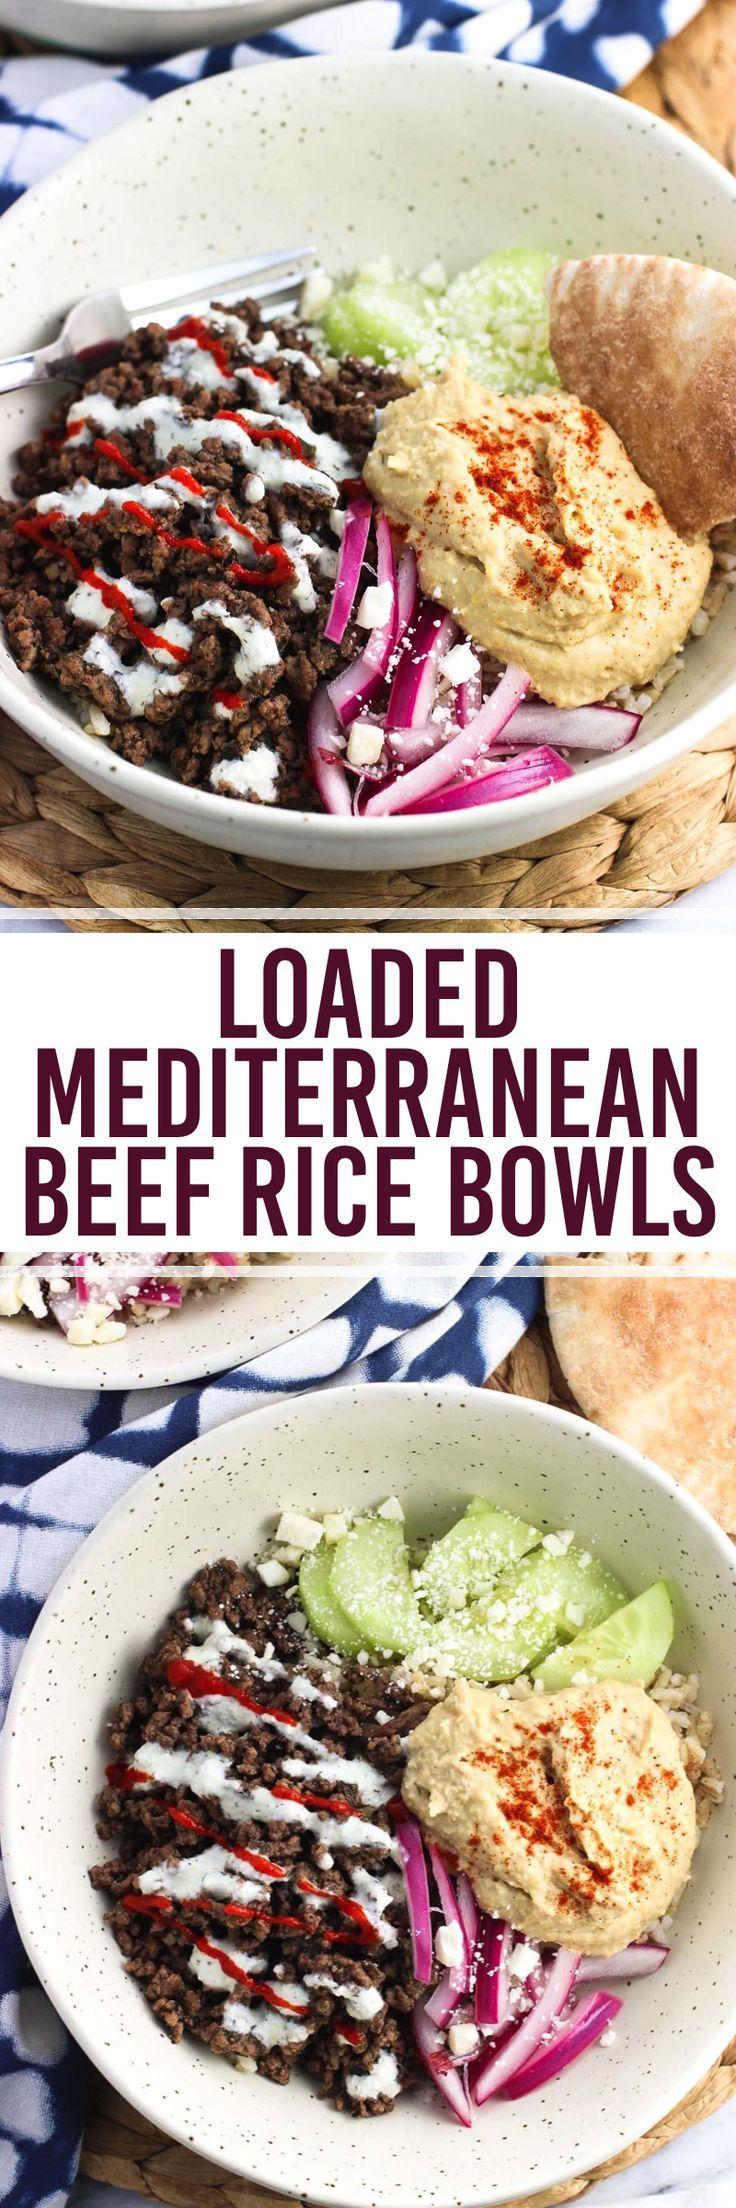 Mediterranean-spiced beef, hummus, cucumber, yogurt sauce, pickled red onion, and feta are served over brown rice for a healthy beef rice bowl recipe.